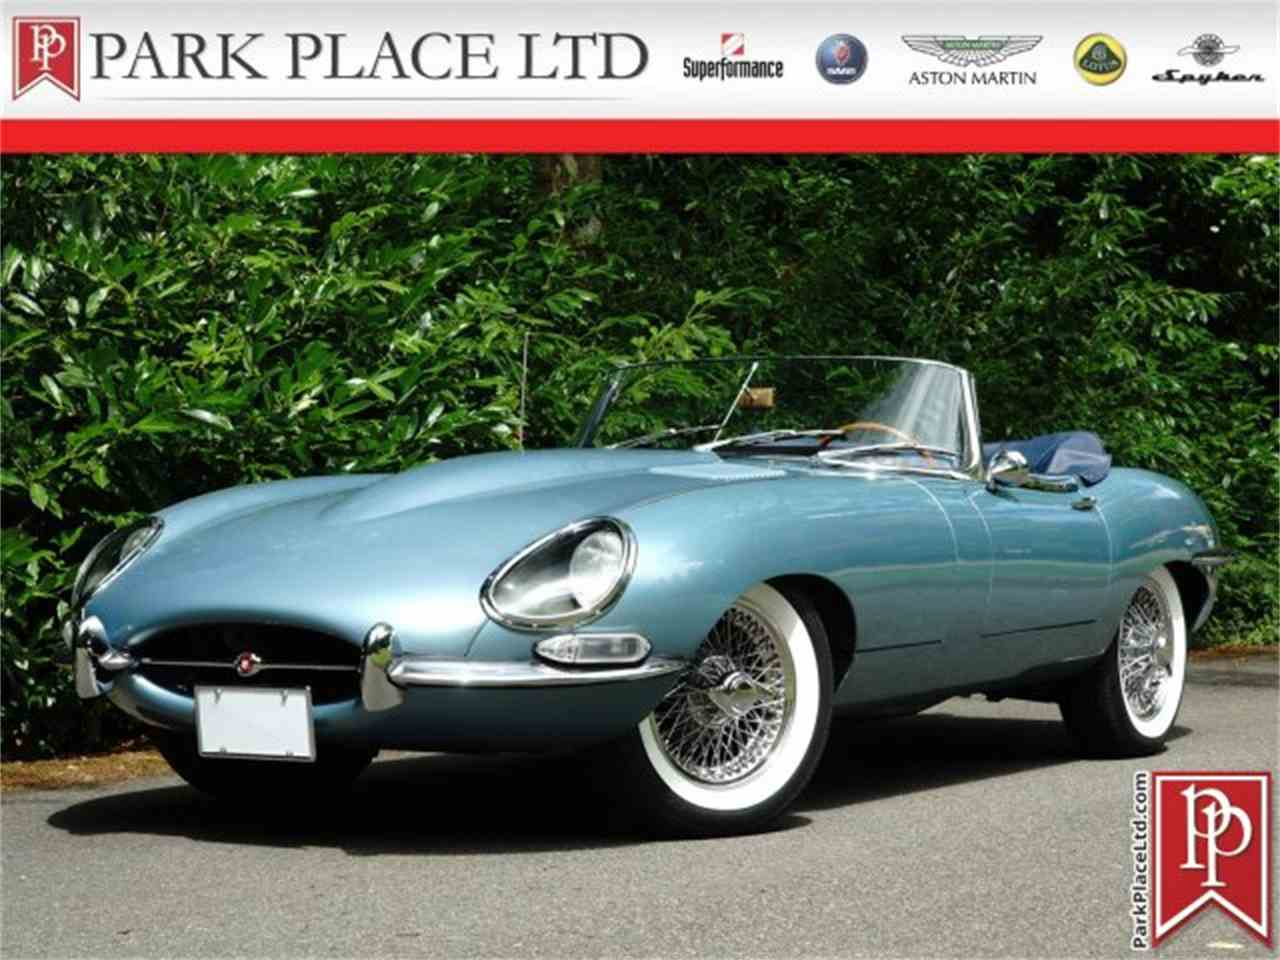 fhc cars xk for jaguar hemmings news s air conditioning sale with classifieds pas motor auto